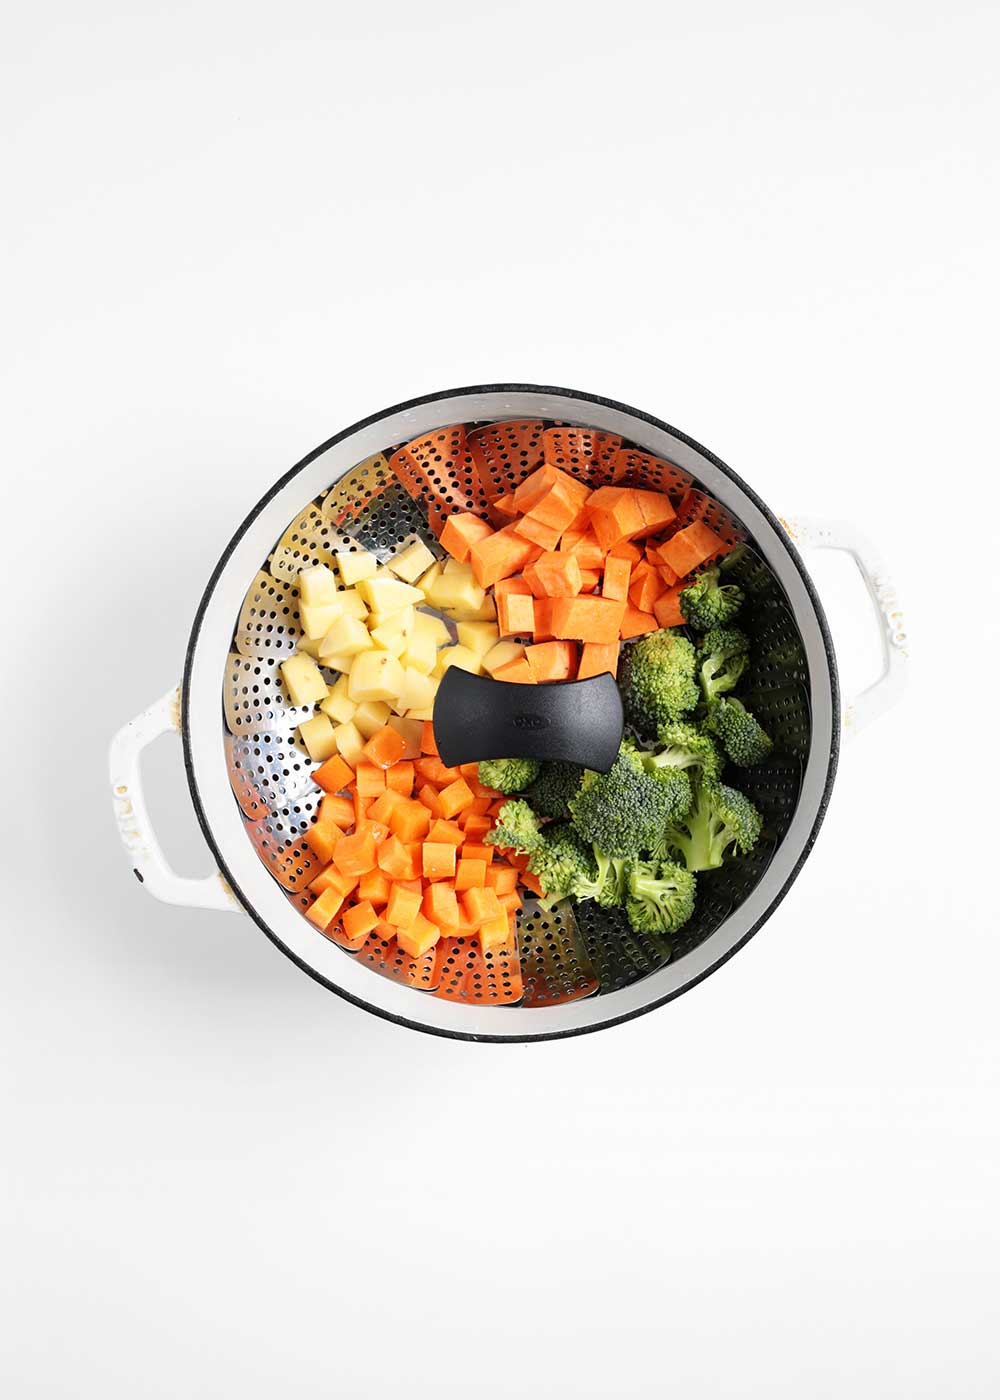 oxo steamer basket to make baby food from the faux martha